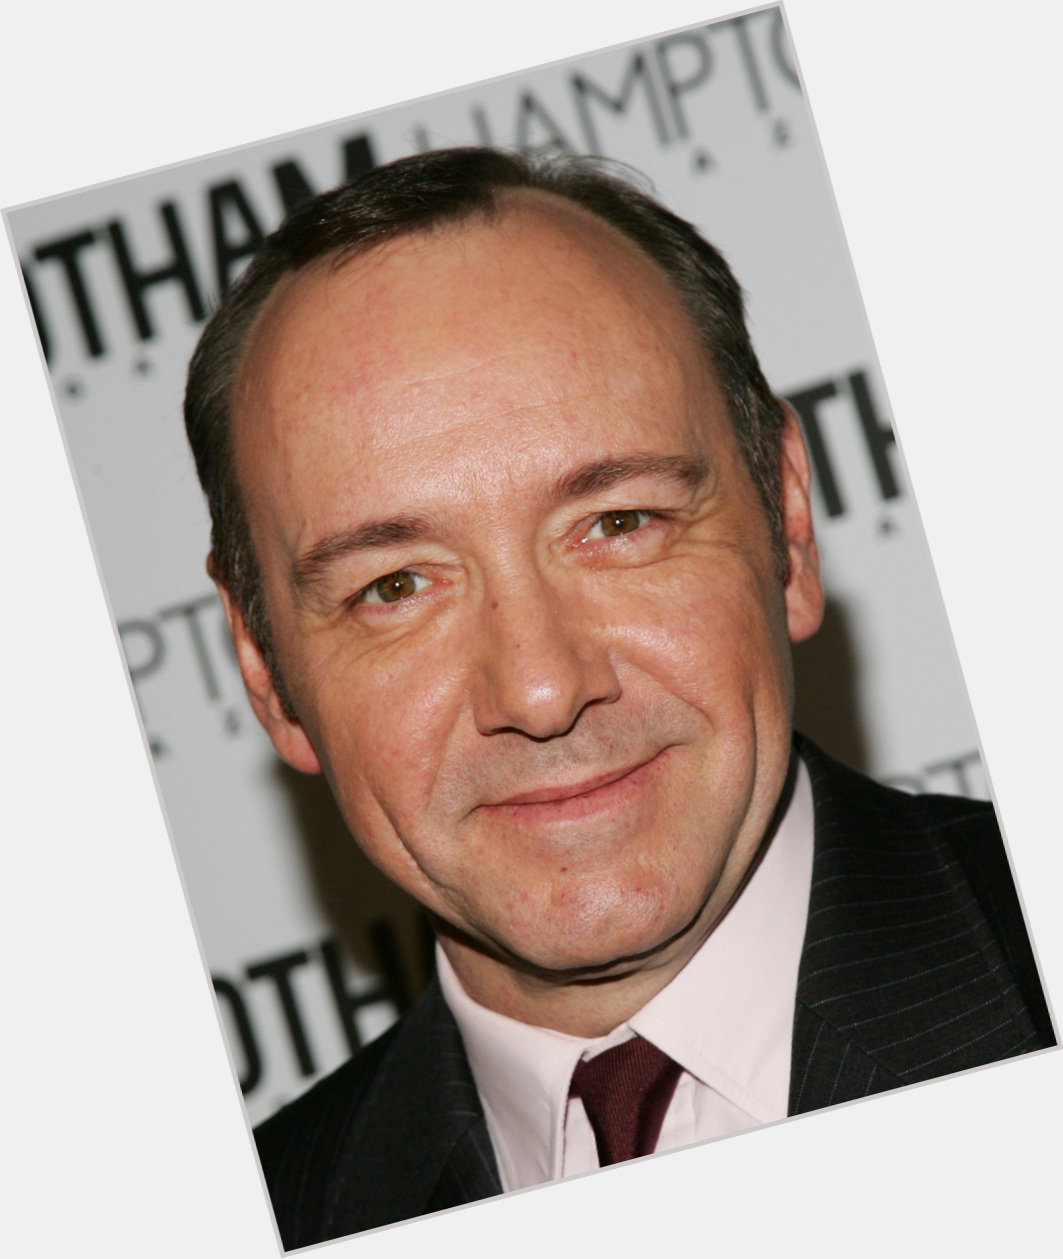 kevin spacey movies 0.jpg